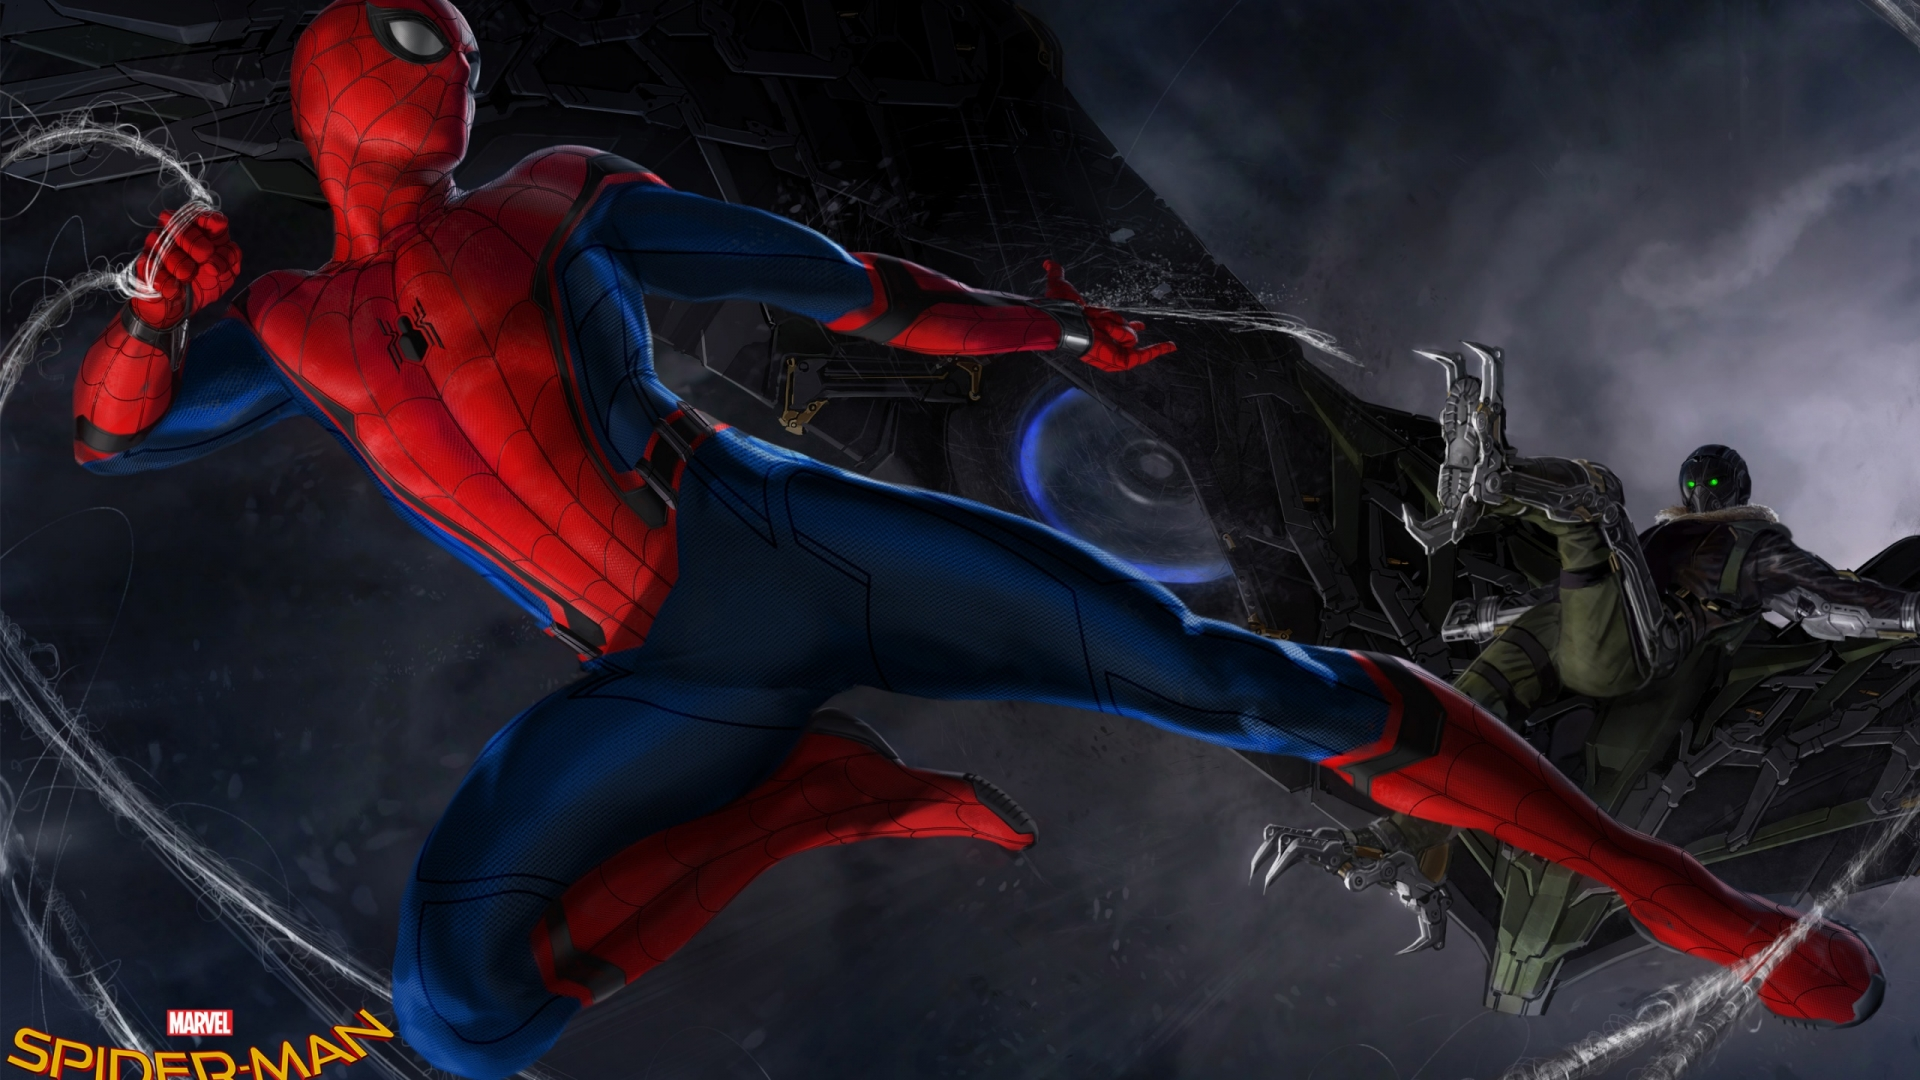 Wallpaper Spider Man Homecoming Images   Spider Man Homecoming 1920x1080